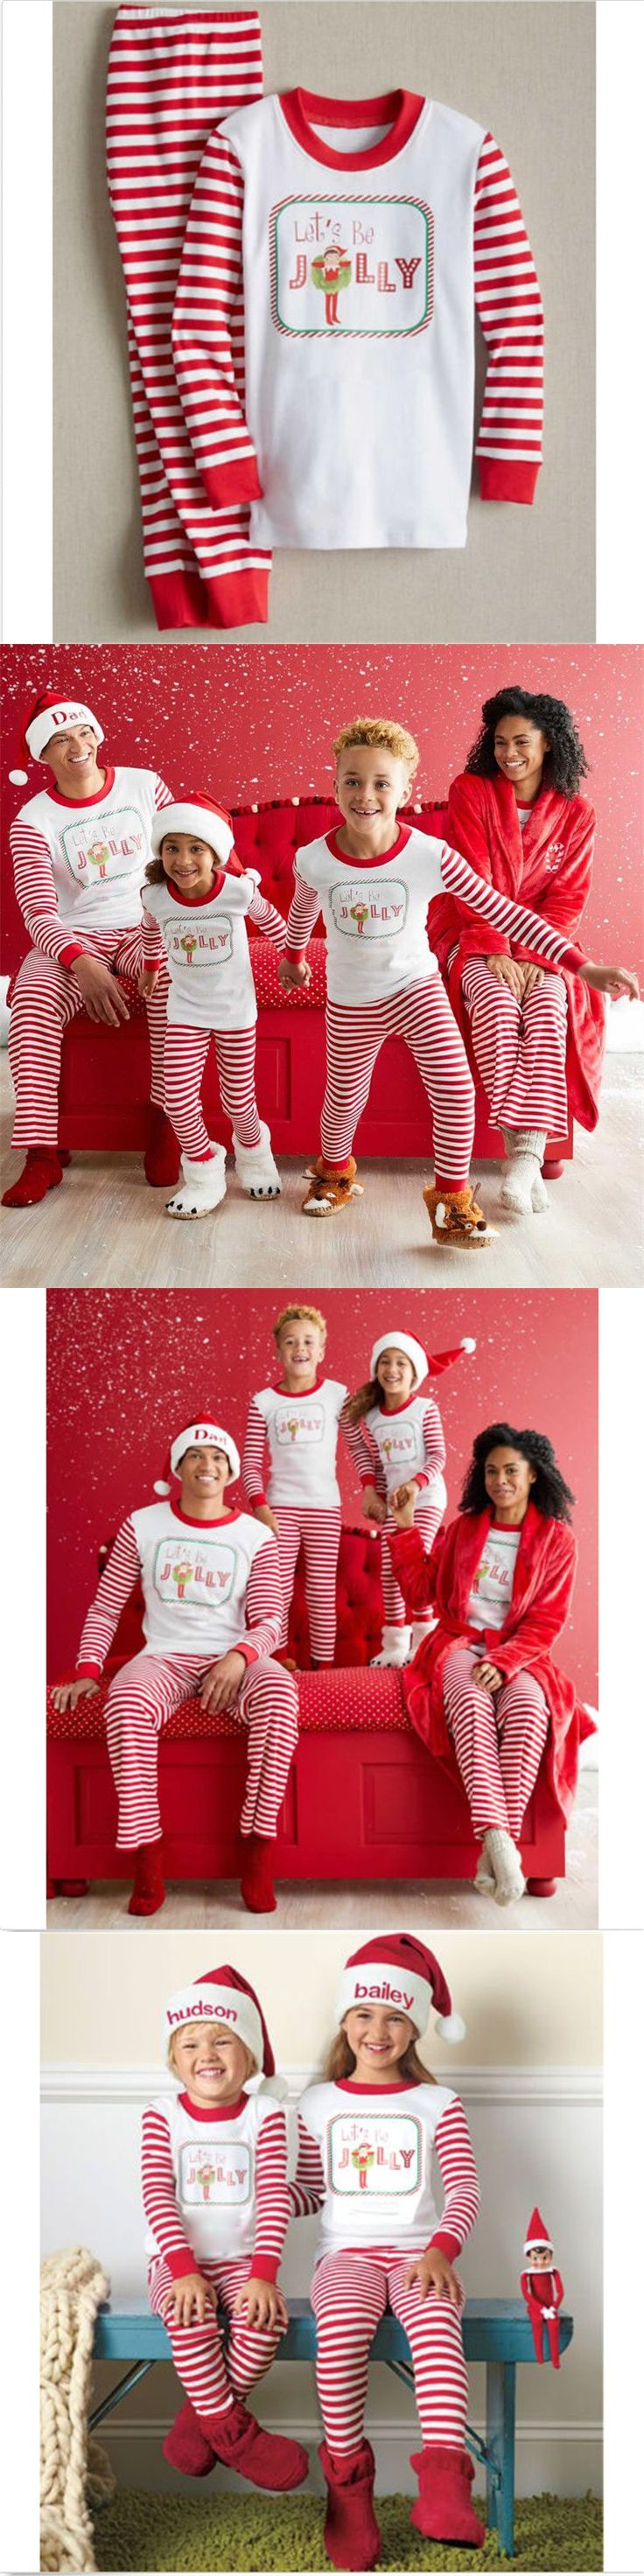 2017 New Christmas Pajamas Family Matching Clothes Sets Mother Father And Son Christmas Outfits Suit Family Clothing